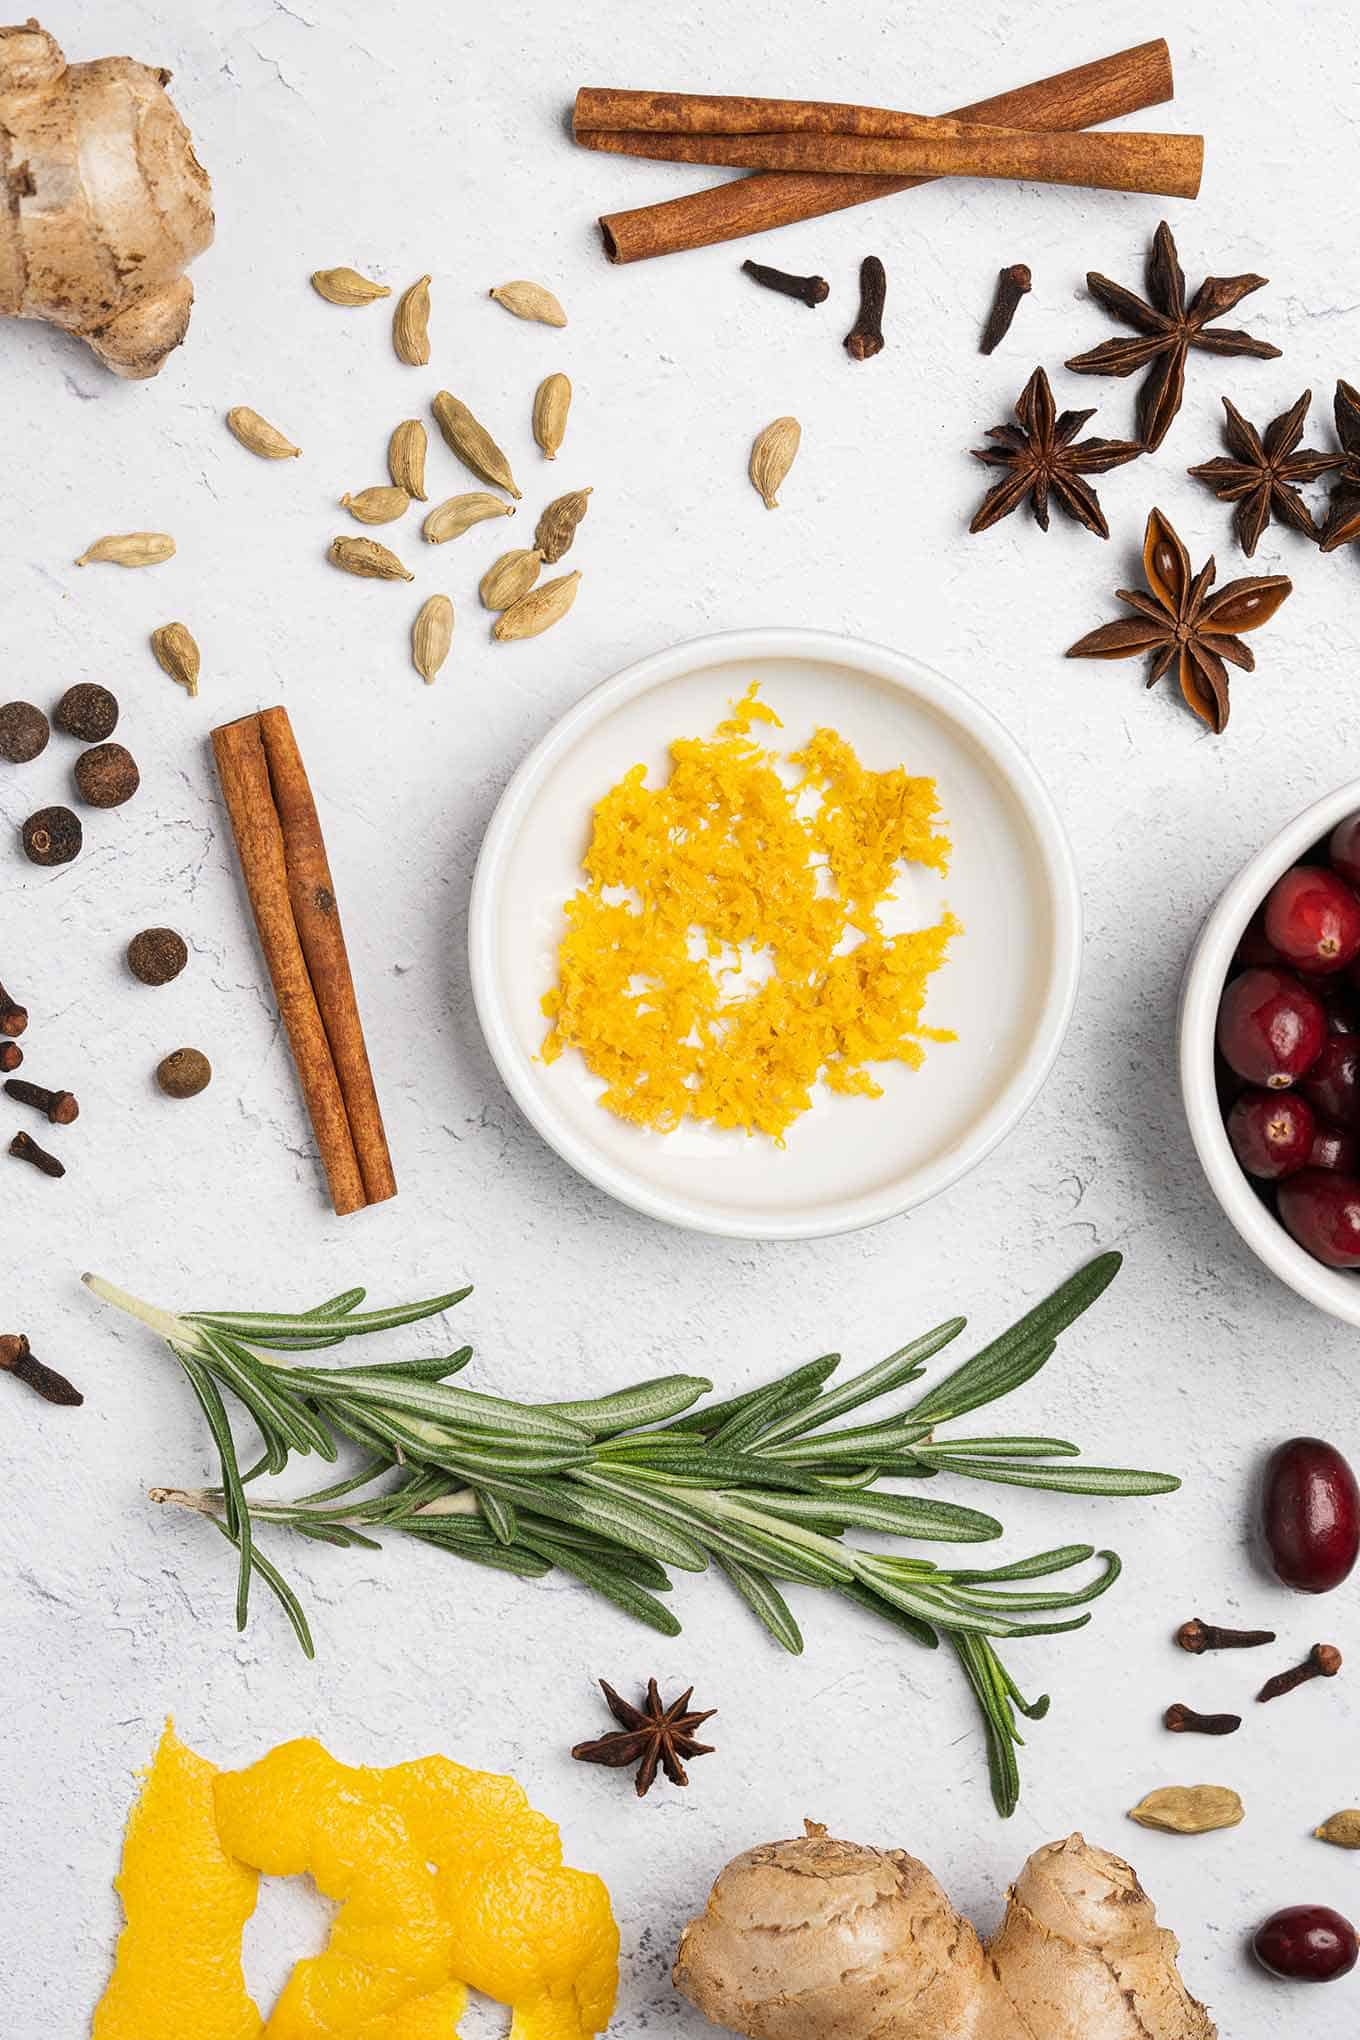 Spiced simple syrup ingredients including cranberries, rosemary, orange zest, and whole spices.